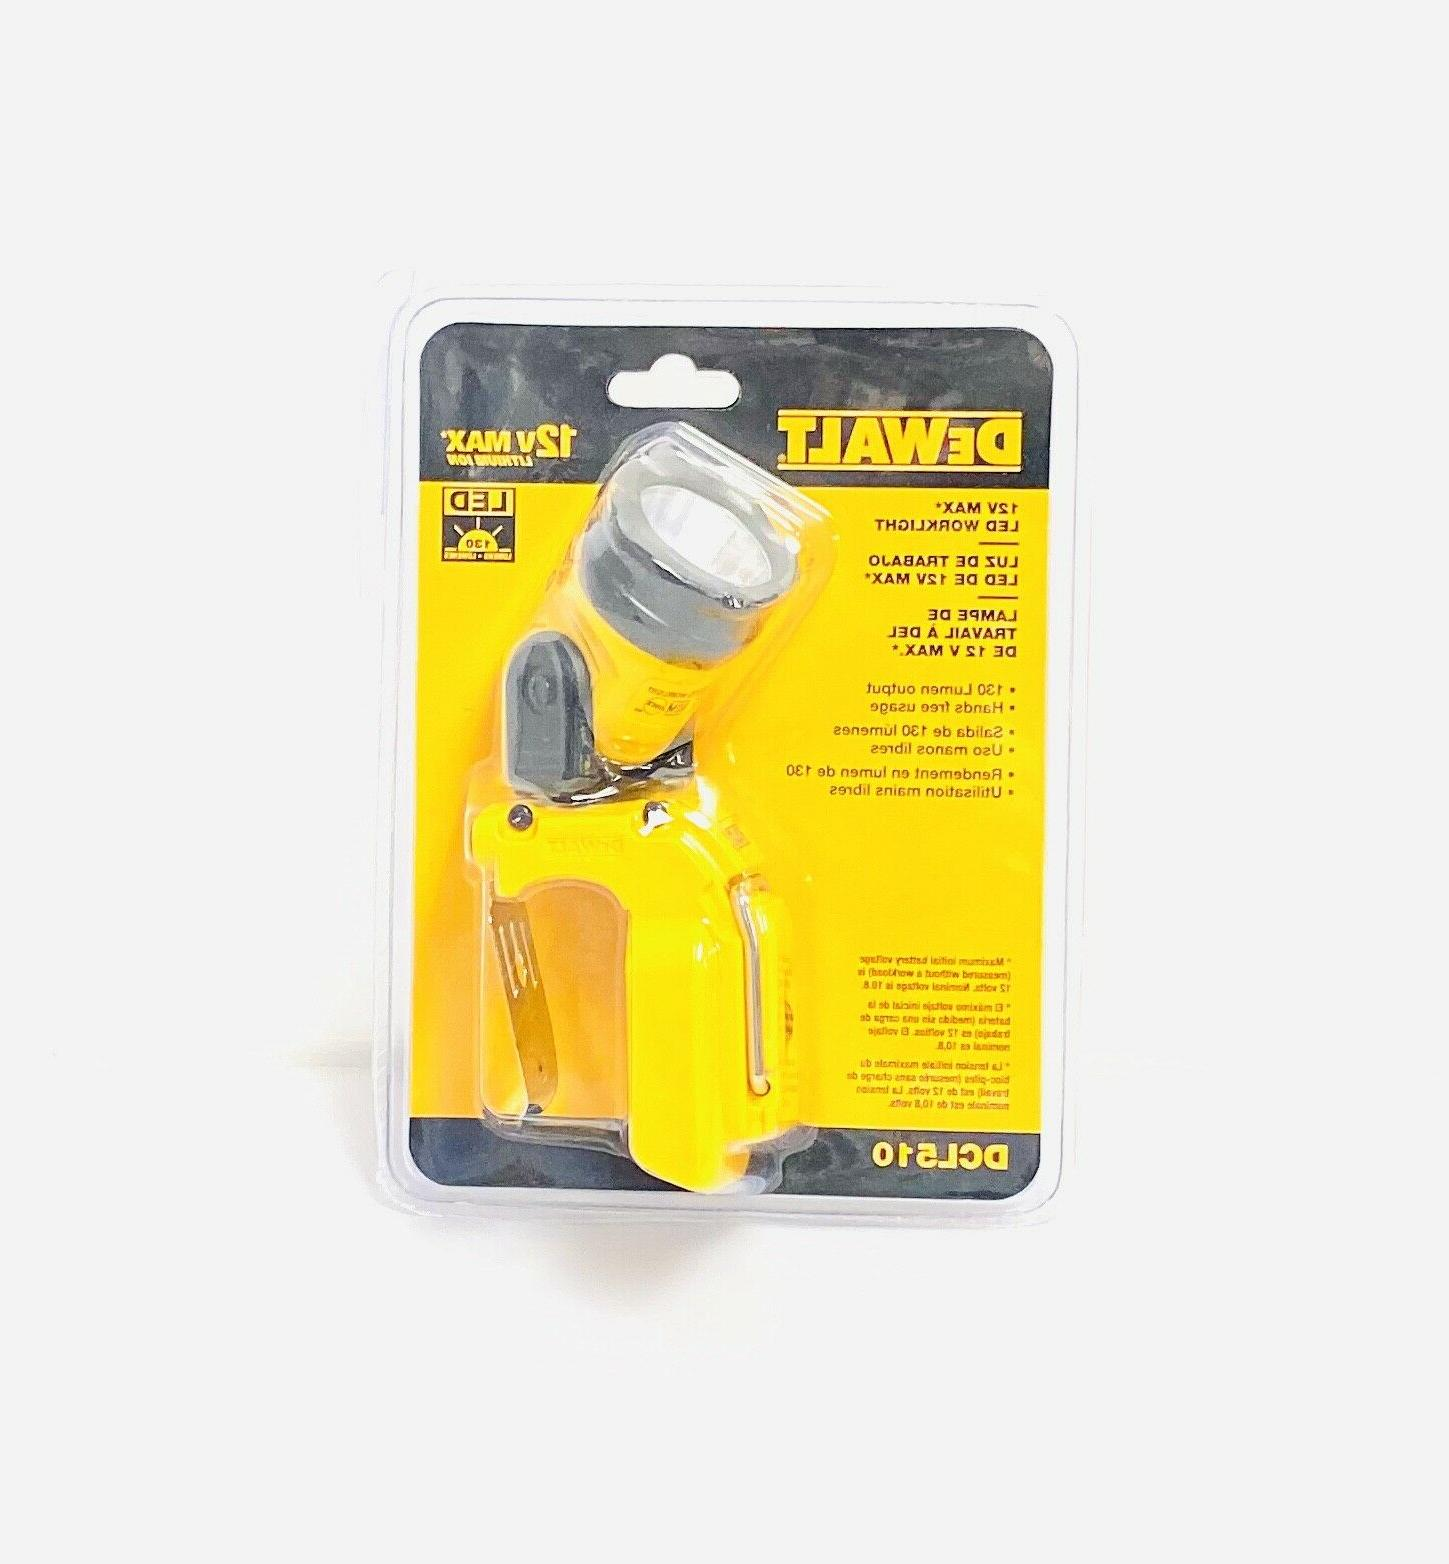 dcl510 max worklight